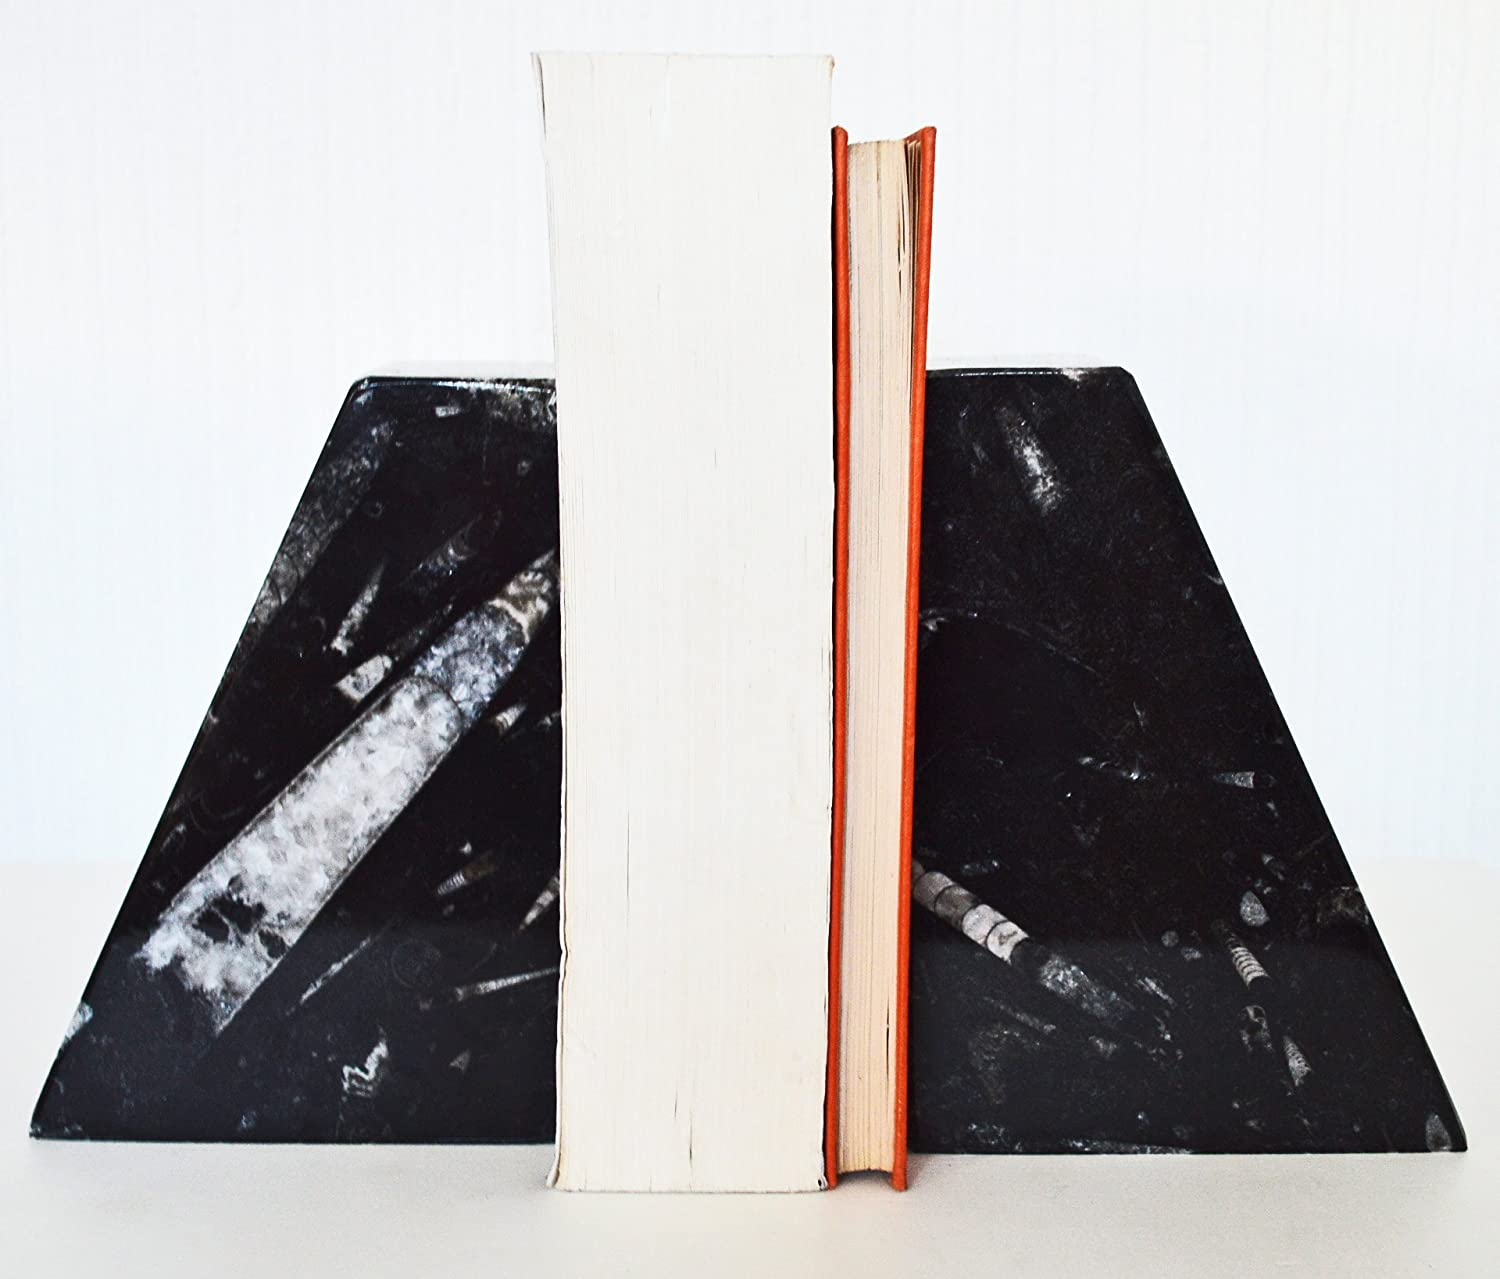 Carved /& Polished Book Ends with Ammonoids and Orthoceras Fossils throughout W12 H 16 D6 Cm Large Black Pyramid